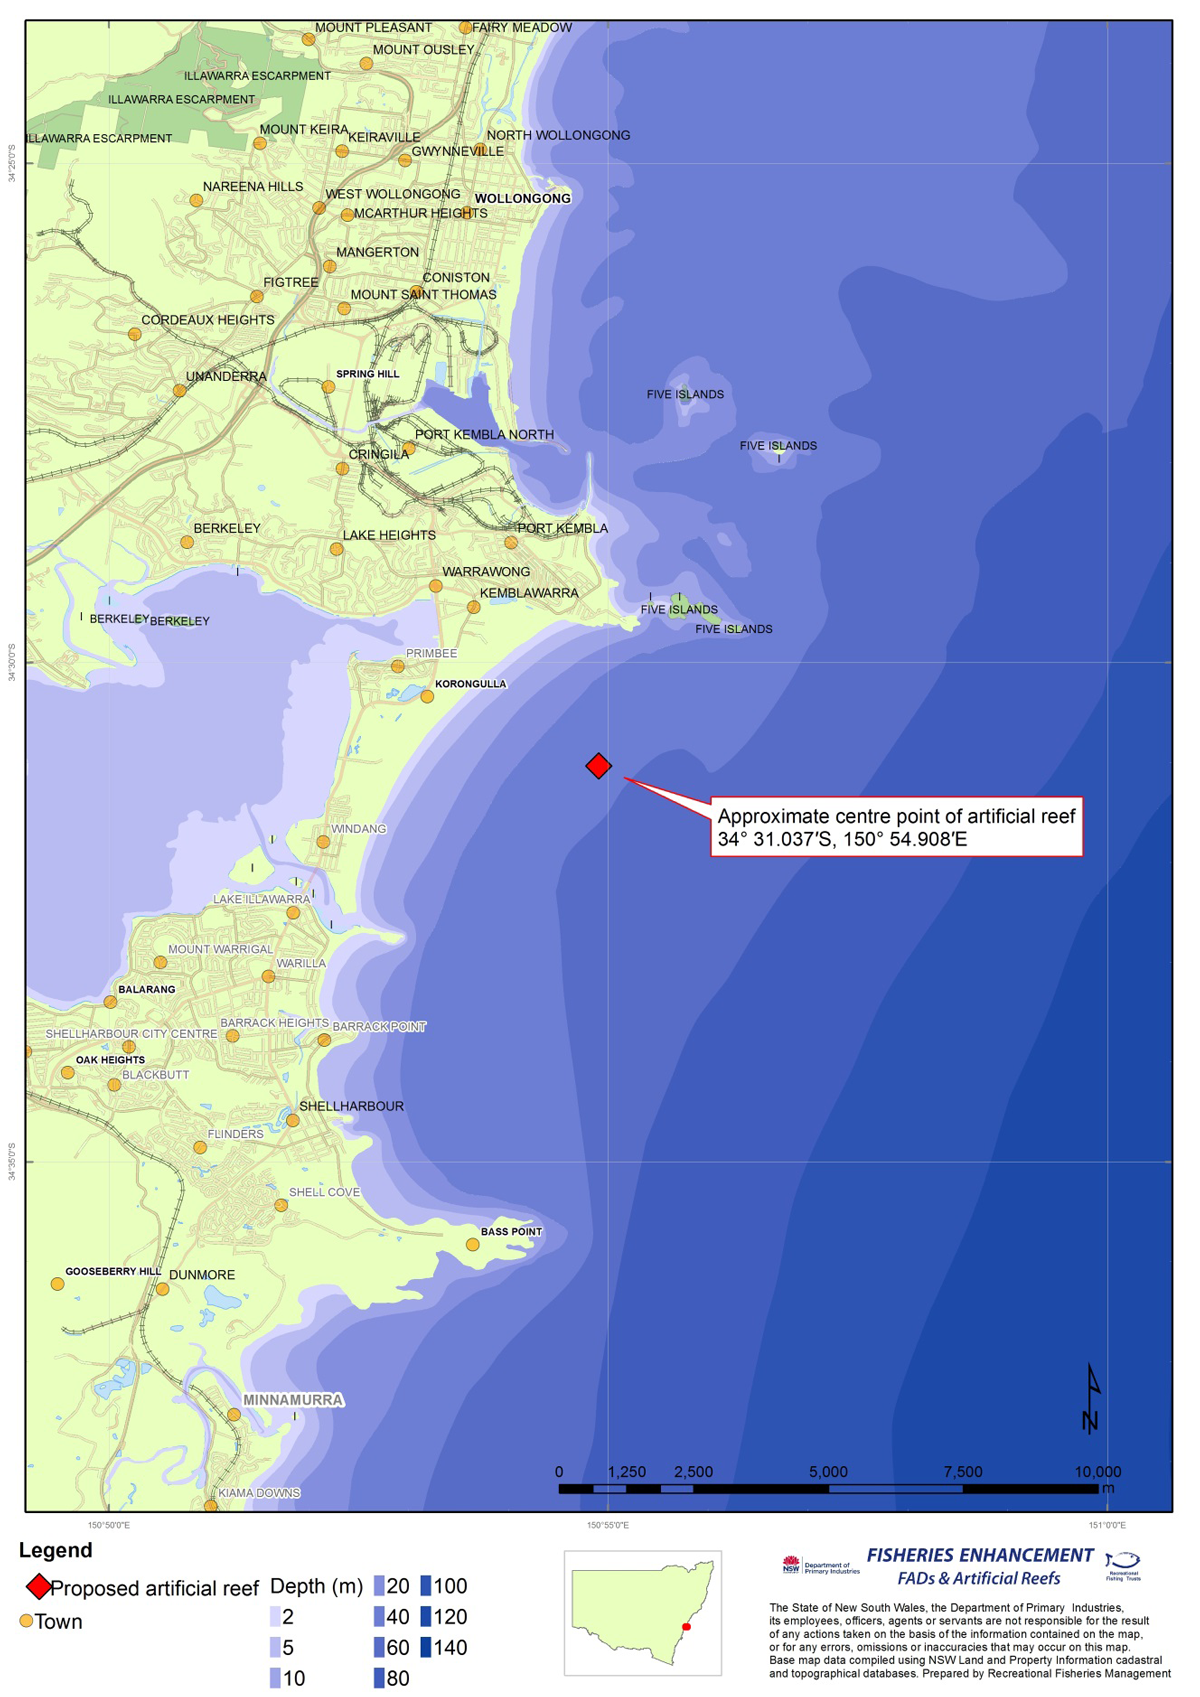 Wollongong offshore artificial reef proposed location for consultation